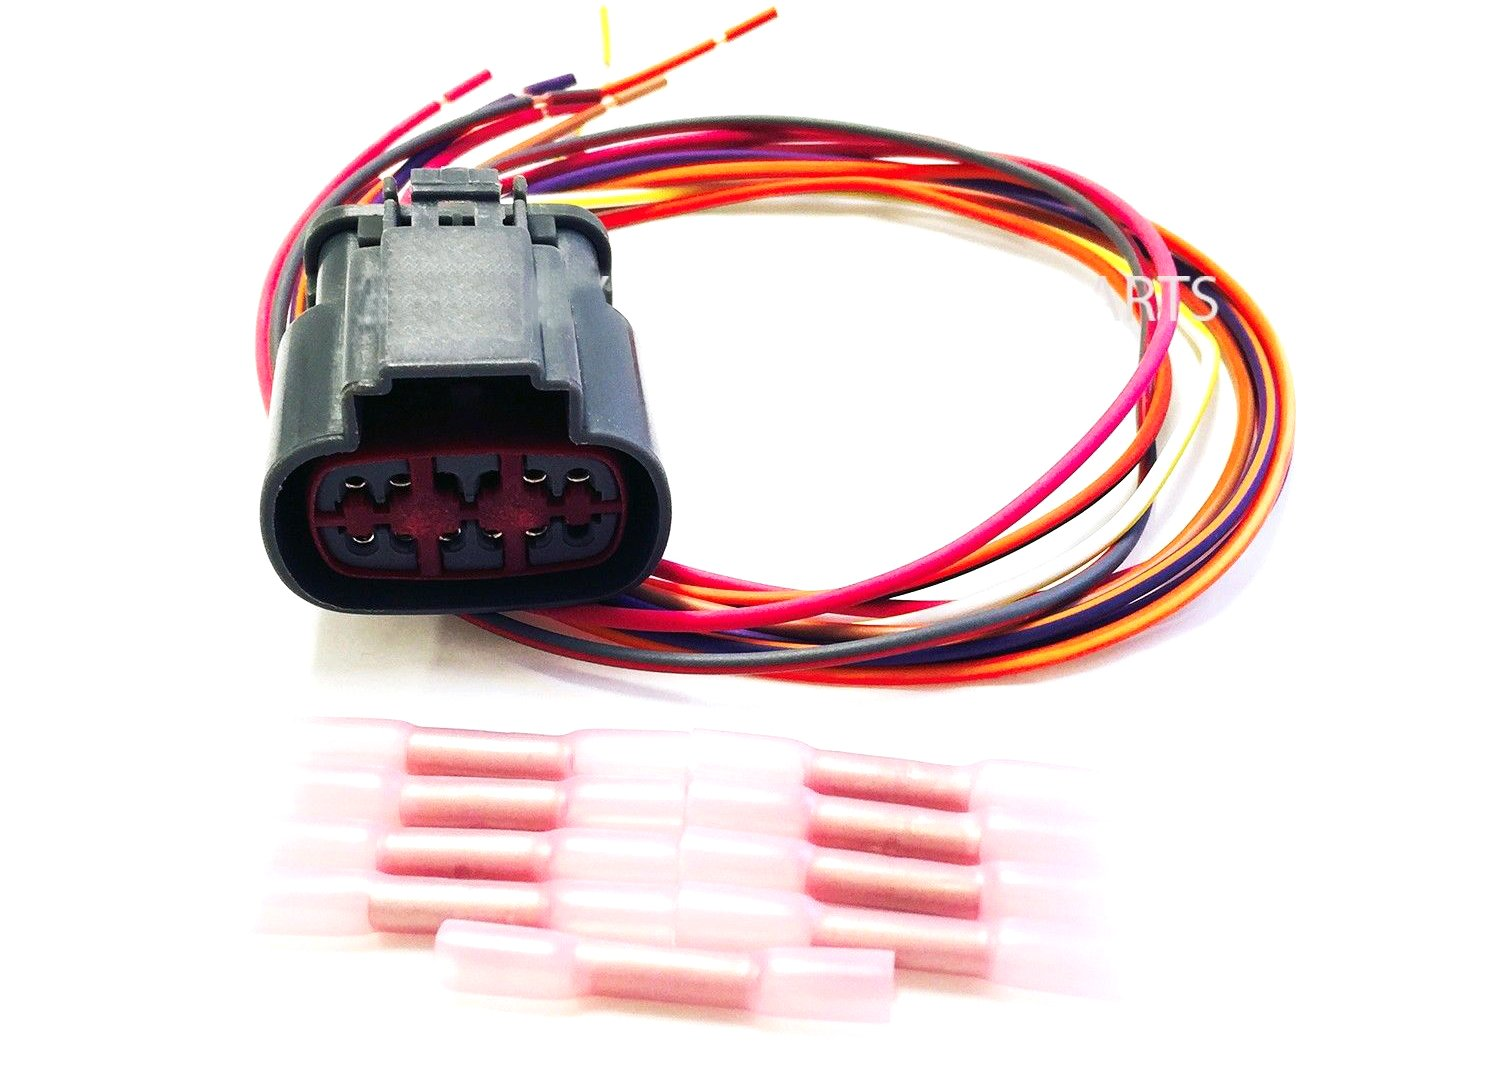 e4od 4r100 wire harness repair kit 1995 \u0026 up